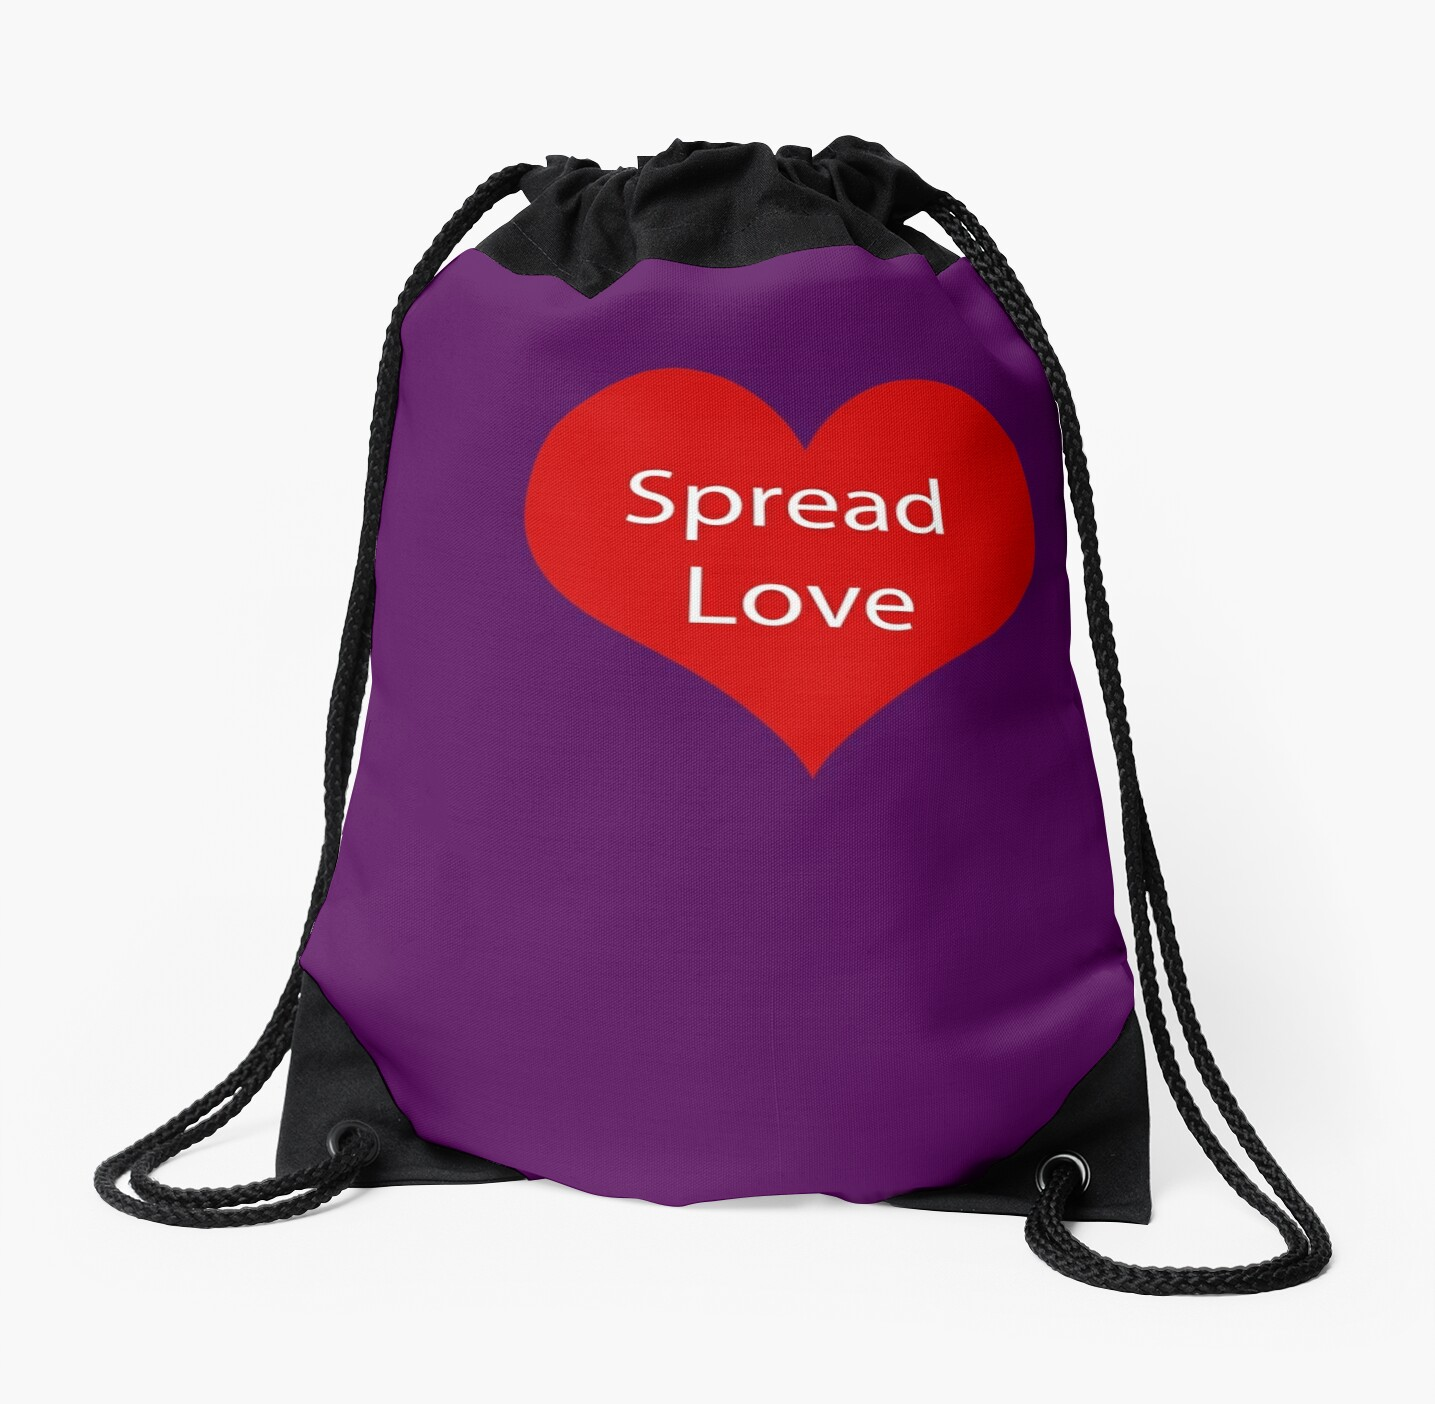 Spread Love  by CoppersMama